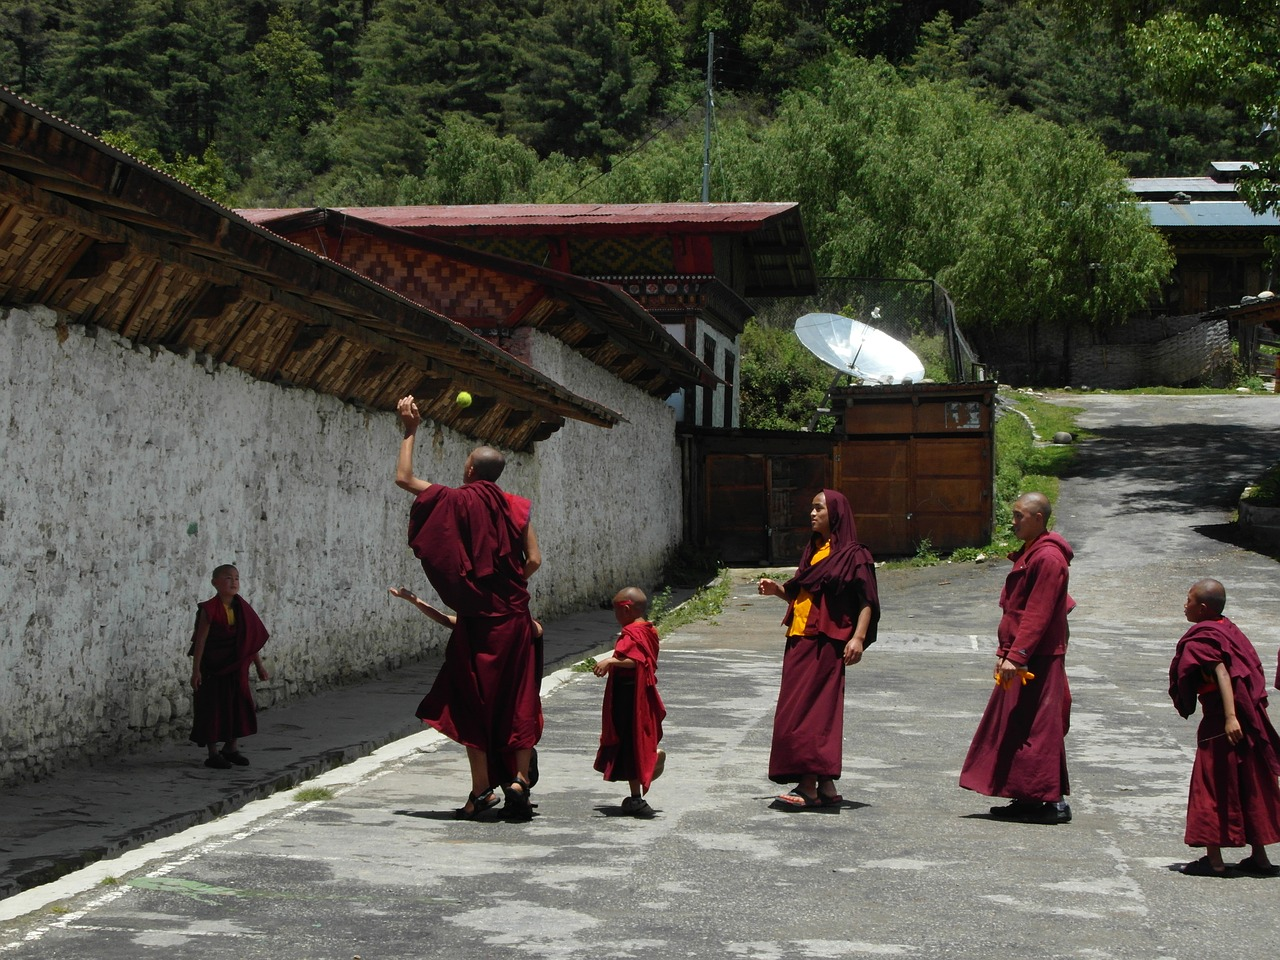 People in Bhutan